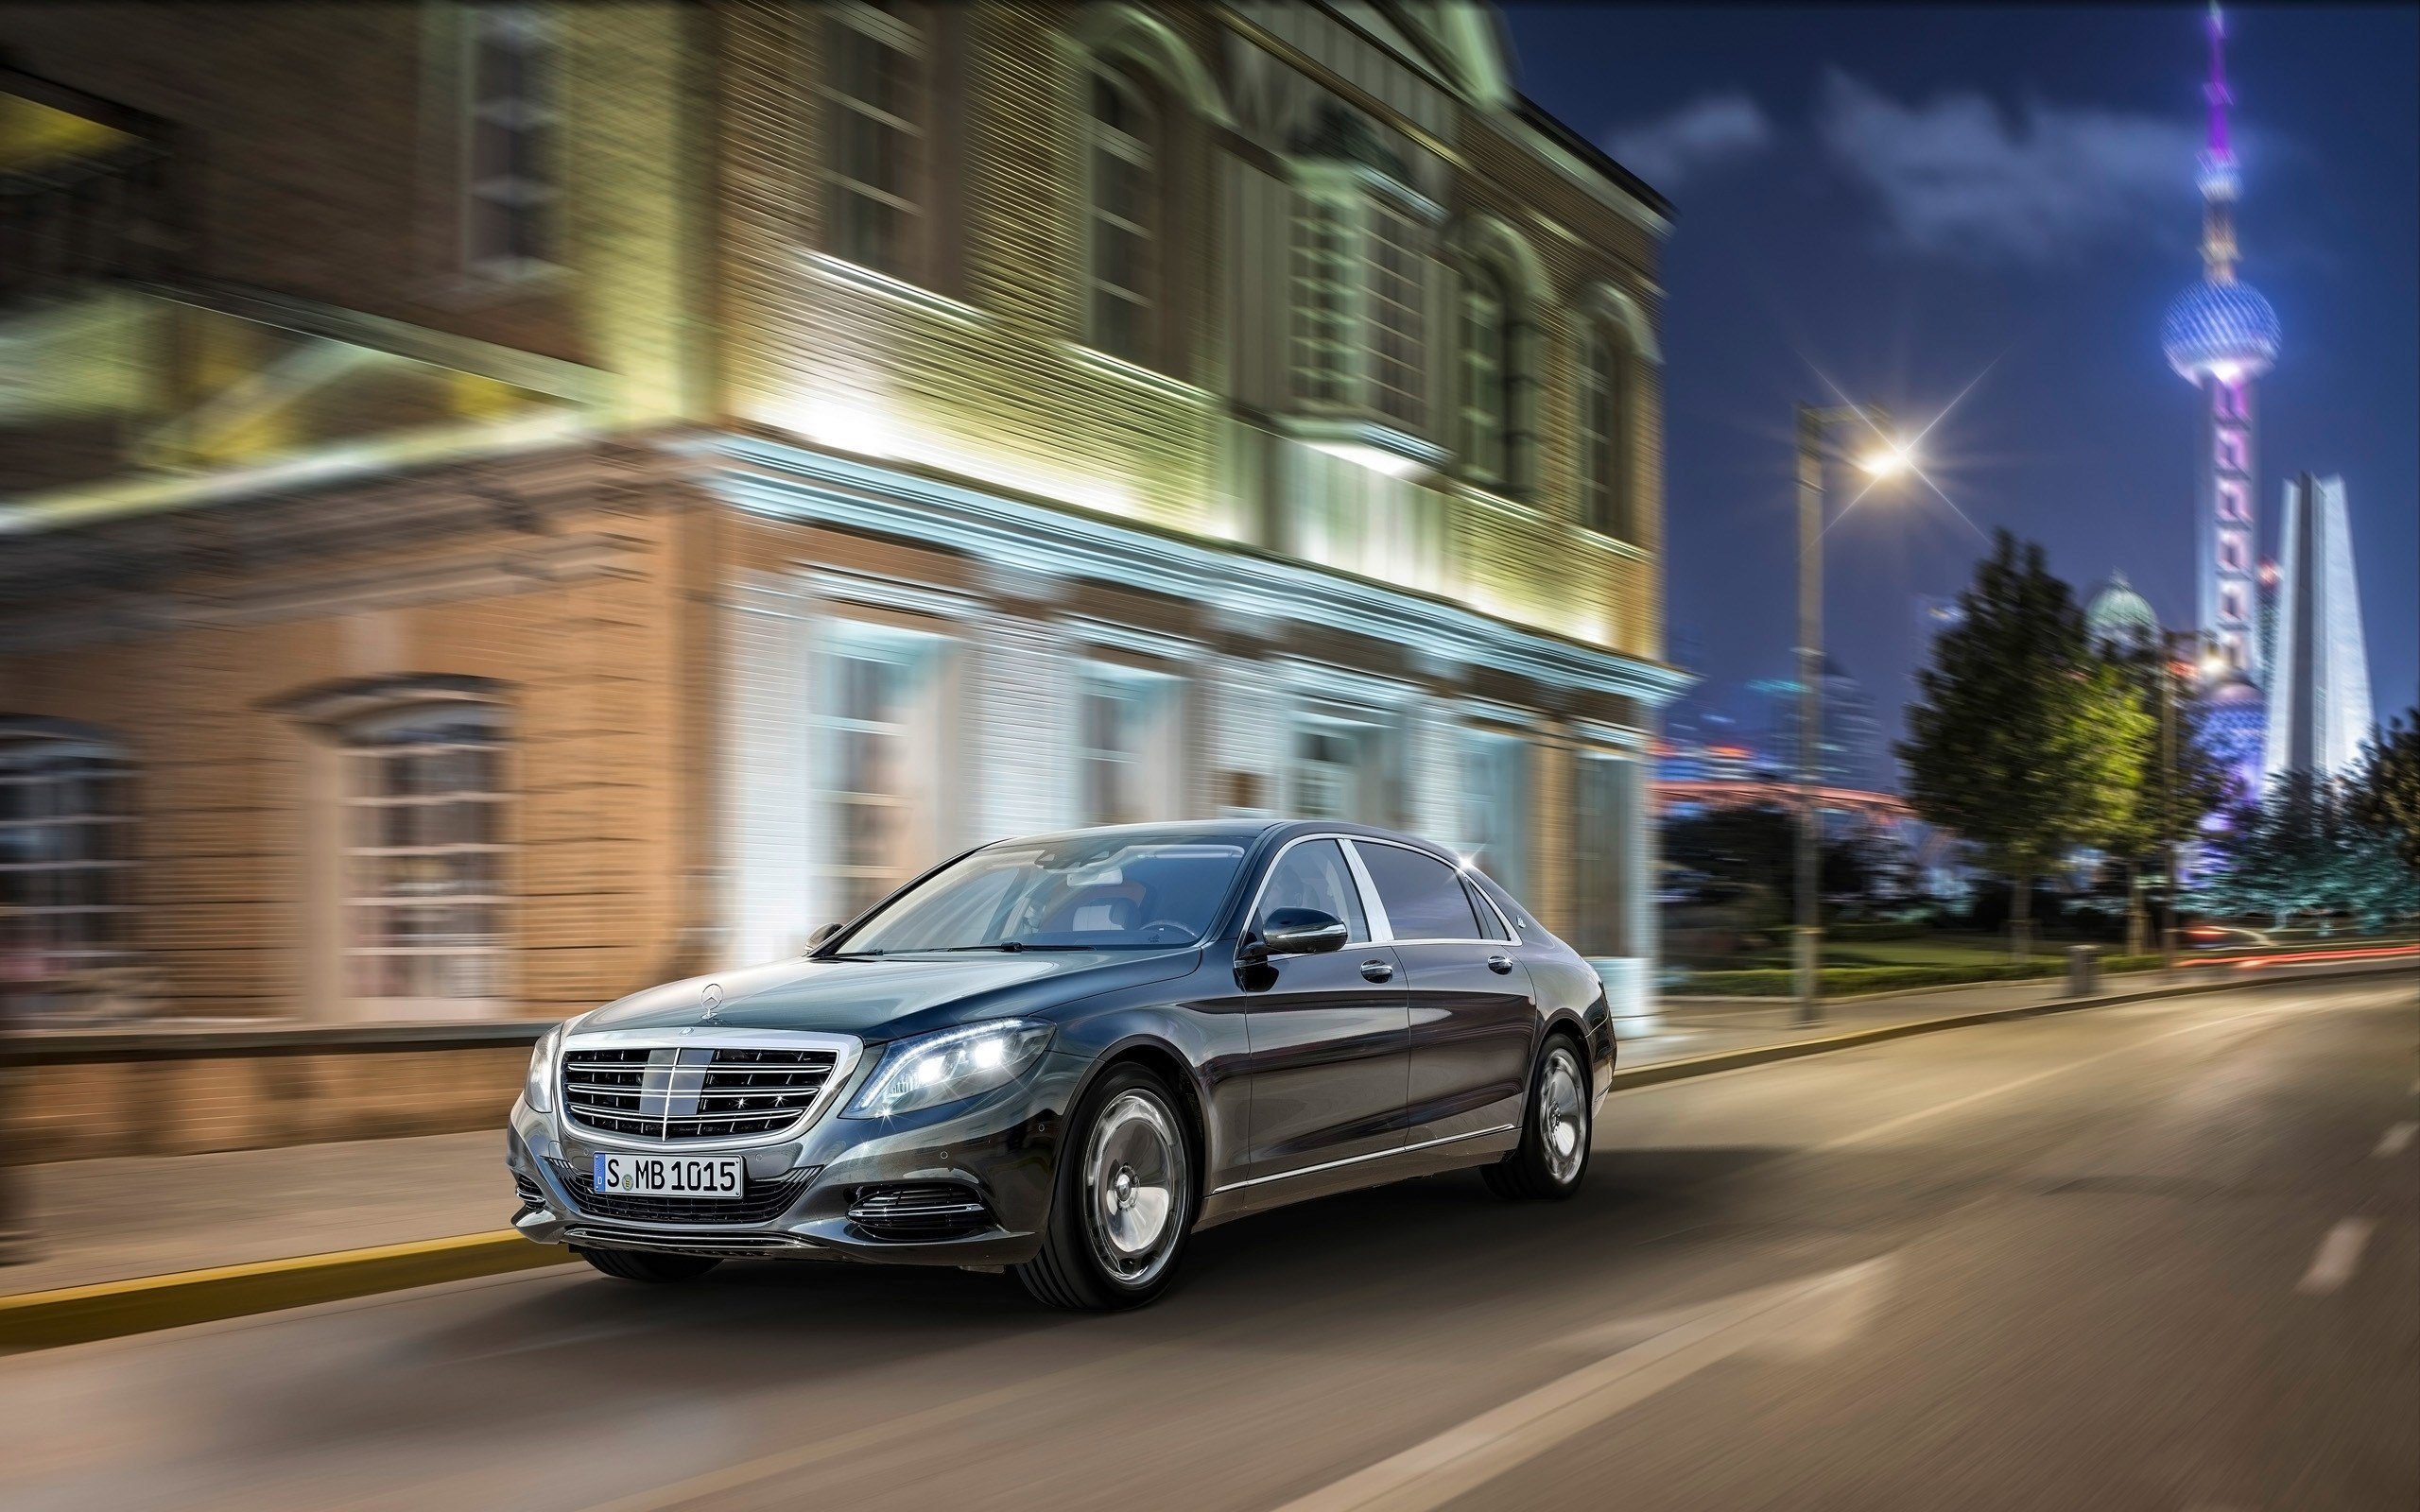 Latest 2015 Mercedes Maybach S Class Wallpaper Hd Car Free Download